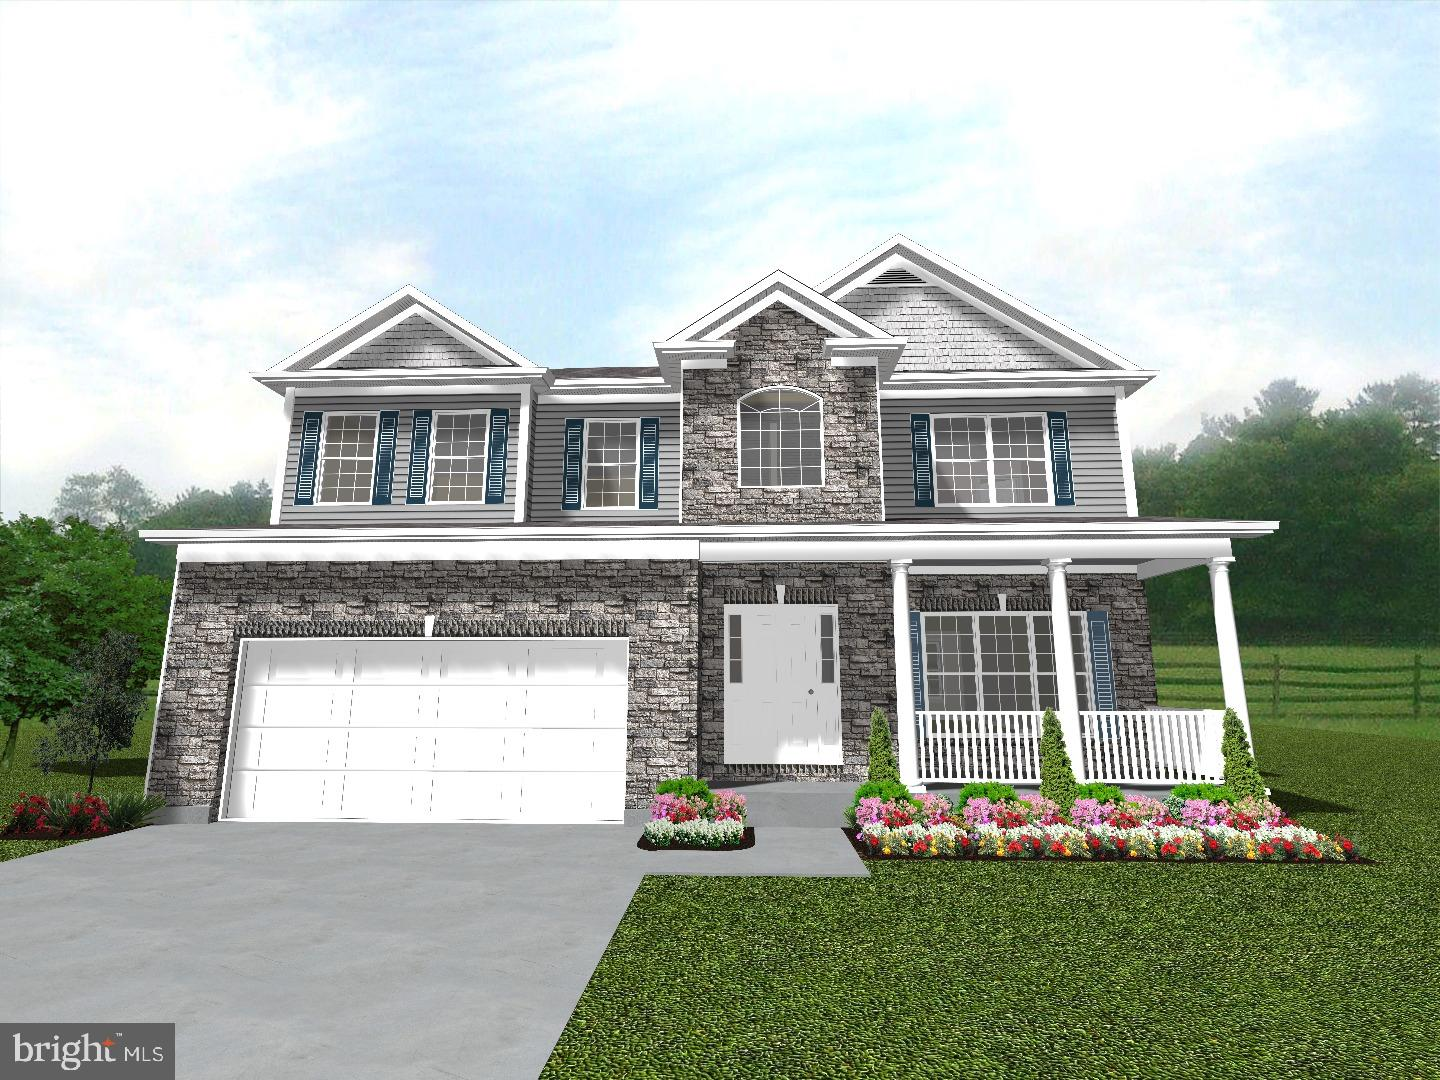 "Welcome home to Lenape's newest floor plan, the Nanticoke! Your beautiful front porch welcomes you into this 4 bedroom, 2.5 bath home. As you enter your foyer area down the hall, you have a 20X16 great room, a formal dining room, large kitchen, pantry, and mudroom. Relax on your 12X10 composite deck that comes standard with this home. Large master bedroom on the 2nd floor with a walk-in closet and large master bathroom that has a double vanity, shower and soaking tub. Three additional spacious rooms all with walk-in closets. Along with this beautiful floor plan comes STANDARD Granite Kitchen Countertops, 42"" Raised Maple Cabinets, A Stainless Steel Appliance Package That Includes Dishwasher, Microwave, Smooth Top Oven and Central Vacuum System. Don't miss out on getting into this beautiful community. Pictures are of a similar home. Please  note - all site visits are strictly by appointment only. Masks must be worn at all times."